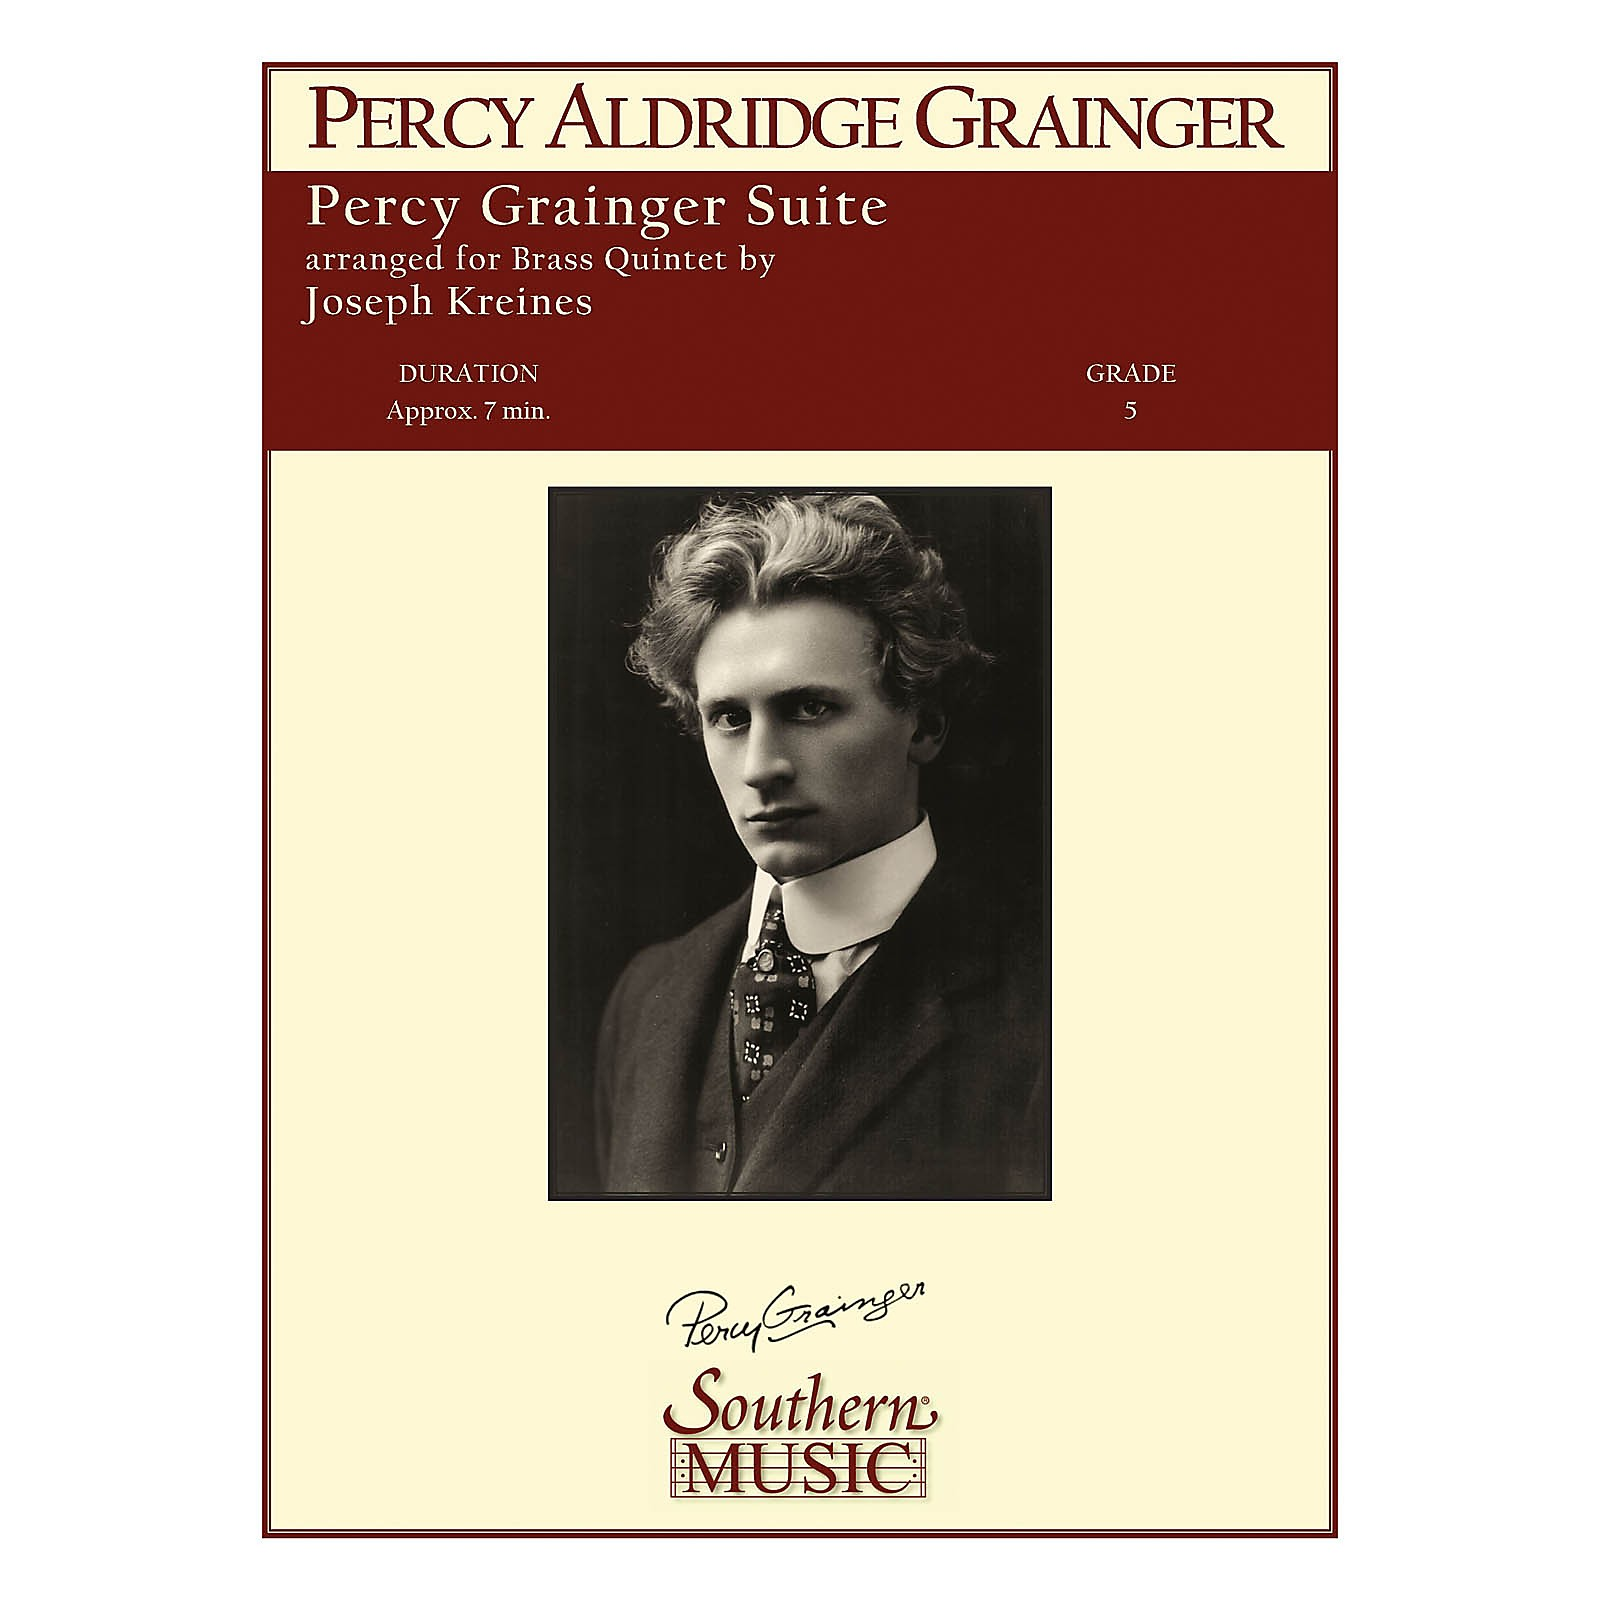 Southern Percy Grainger Suite Southern Music Series by Percy Aldridge Grainger Arranged by Joseph Kreines